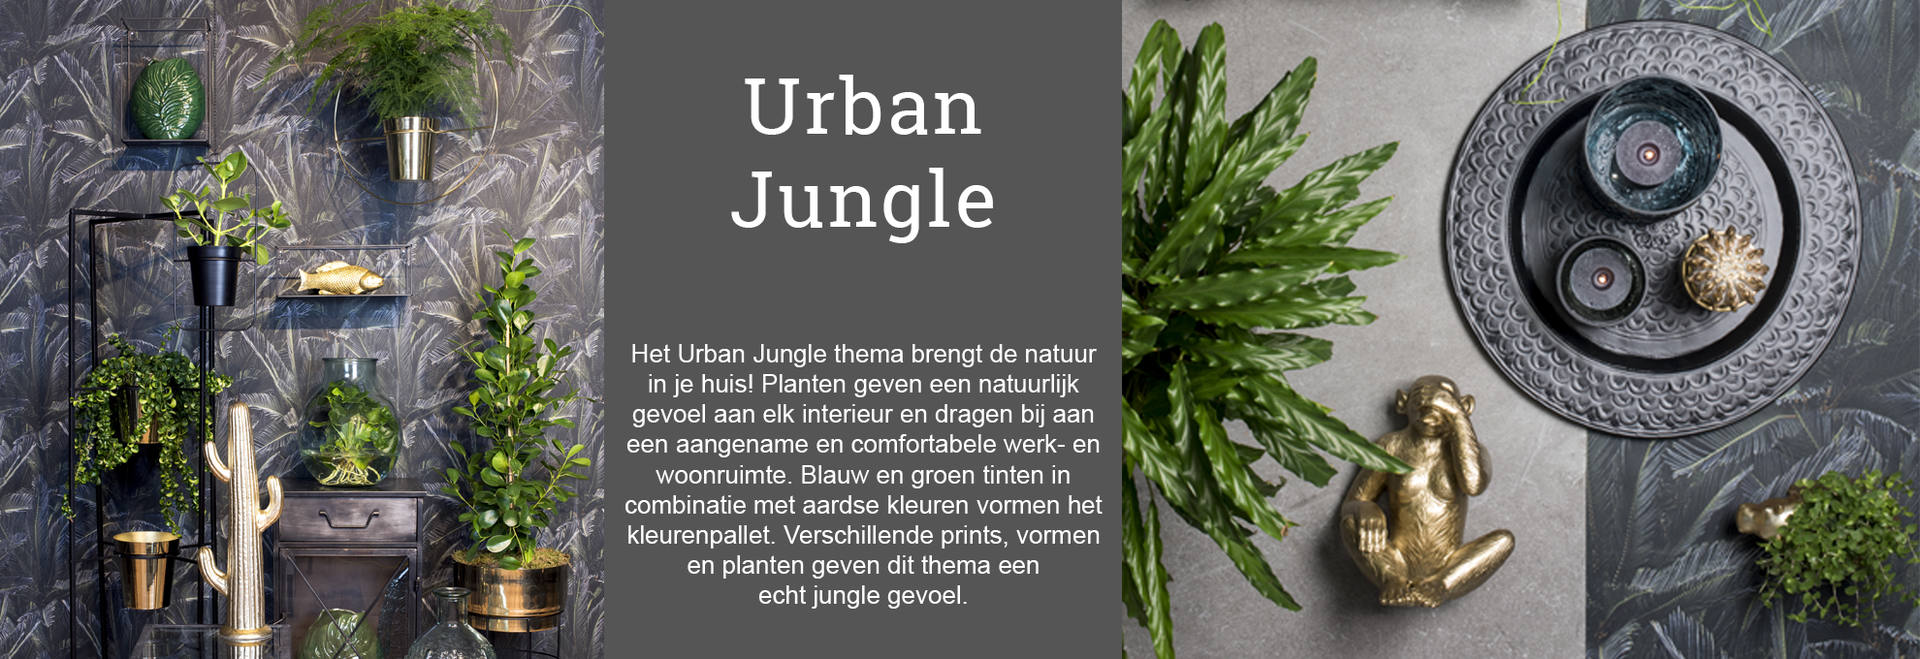 urban_jungle_02_NL.jpg